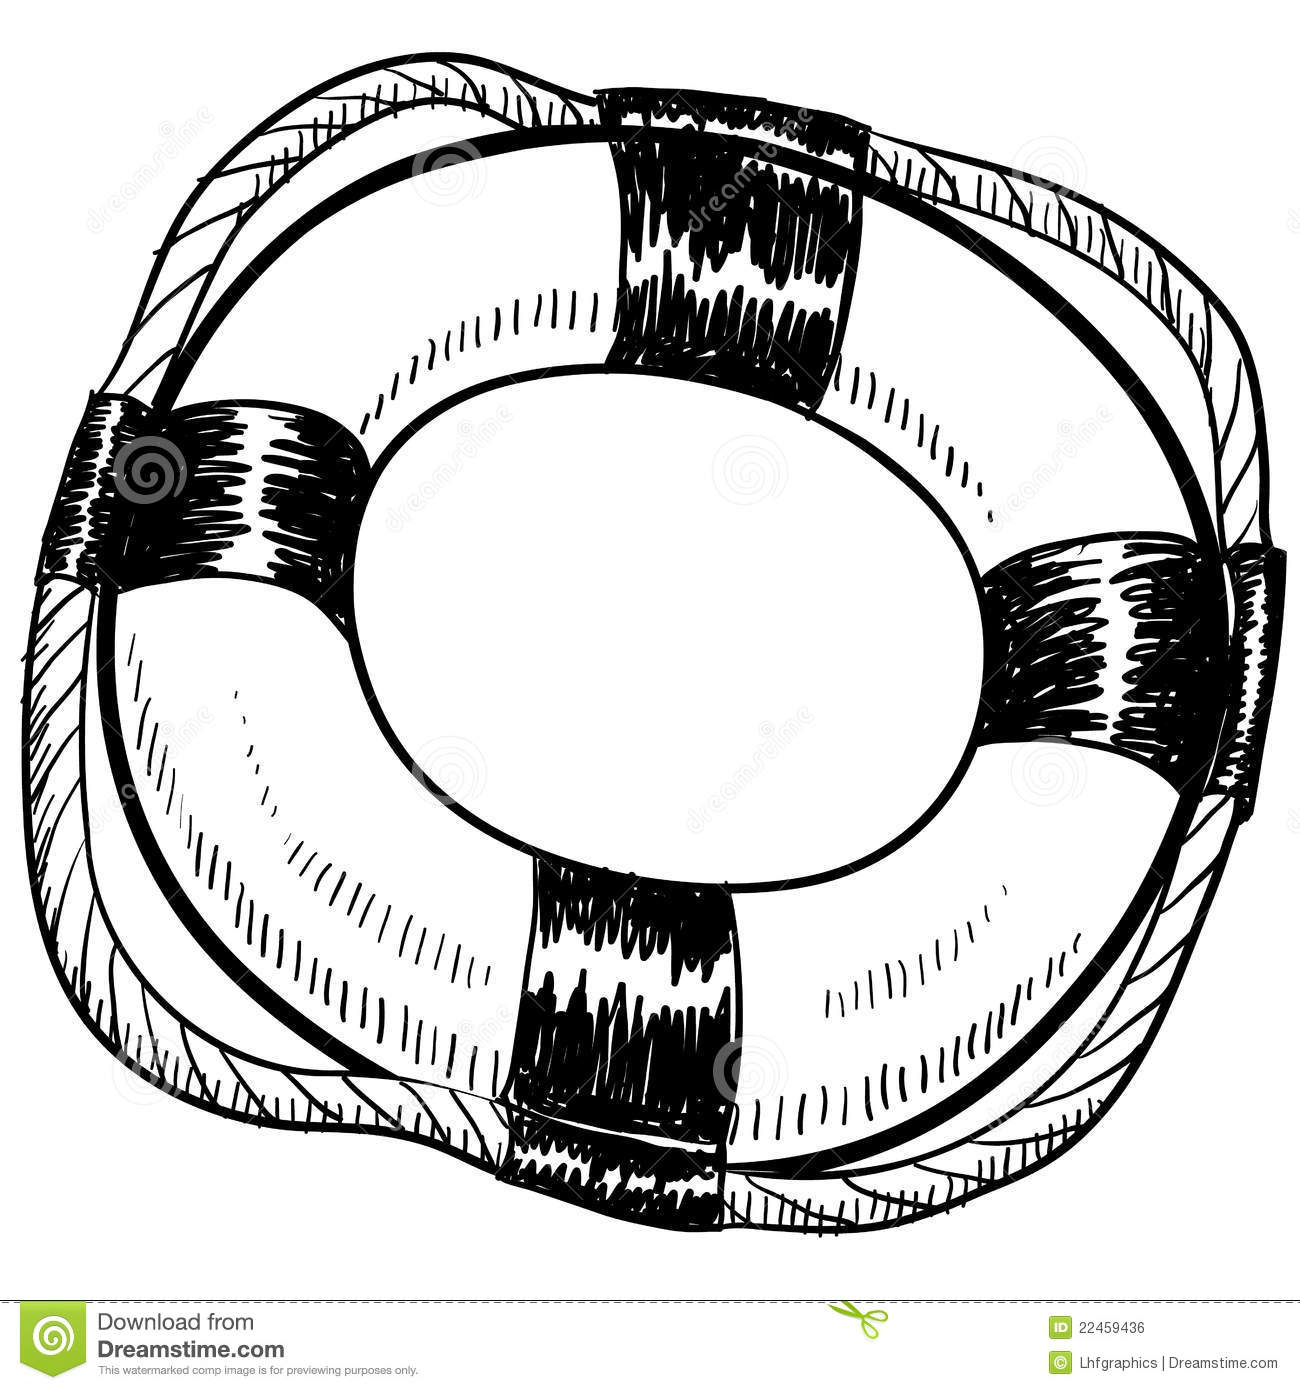 Life Preserver Drawing Royalty Free Stock Image - Image: 22459436